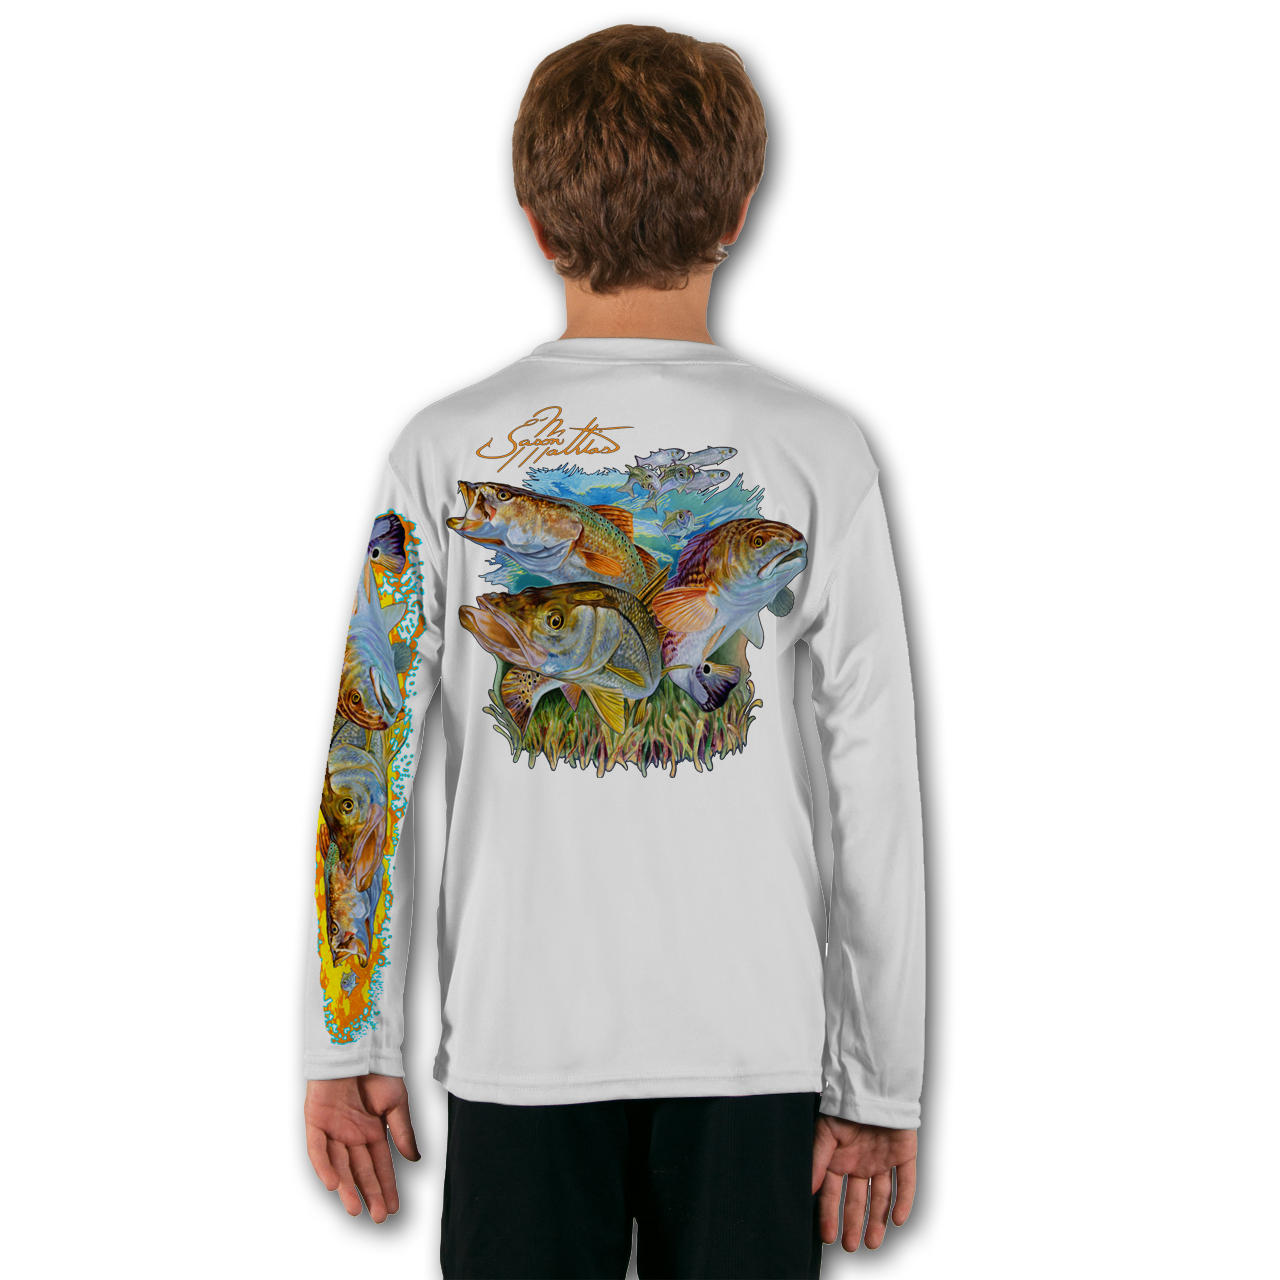 inshore-slam-white-youth-solar-ls-back-performance-shirt.png